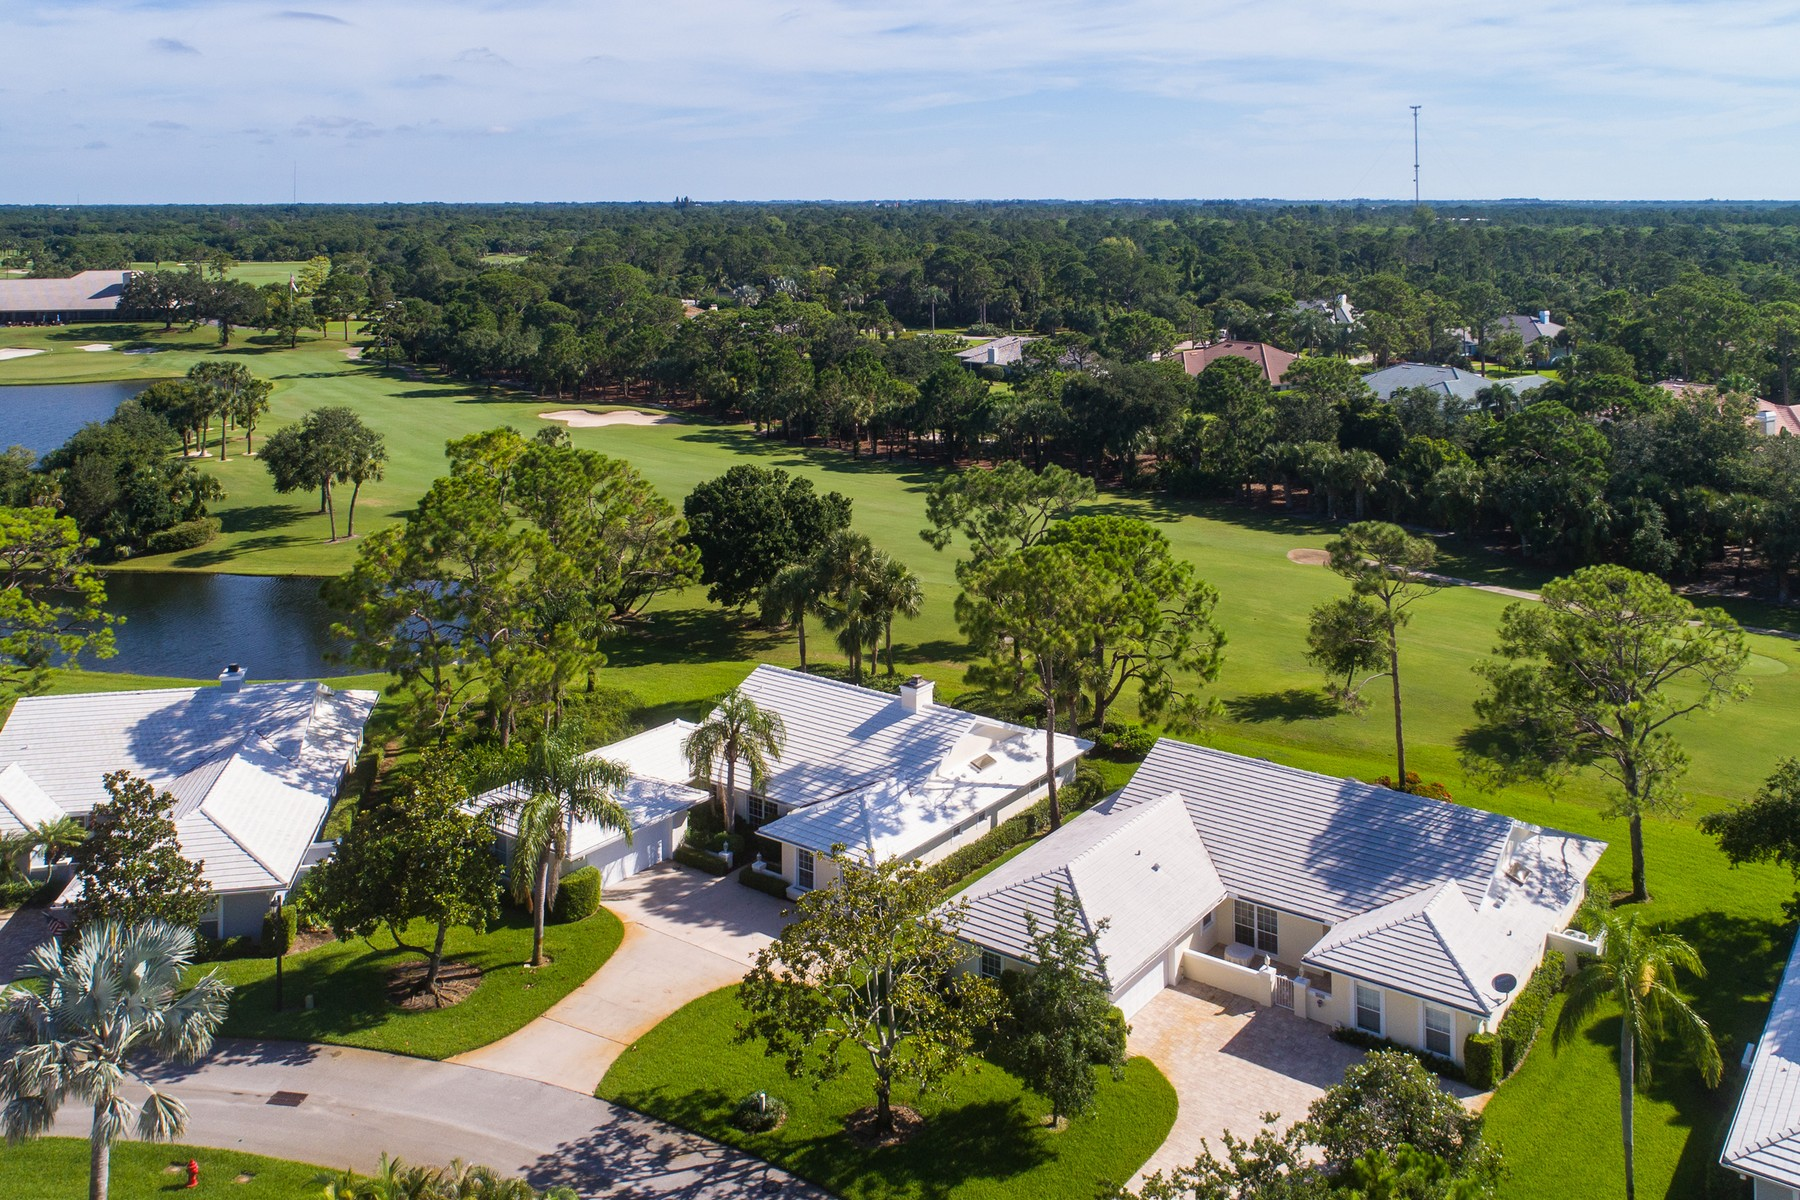 Casa Unifamiliar por un Venta en Golf Villa overlooking Golf Course 5807 Magnolia Lane Vero Beach, Florida 32967 Estados Unidos